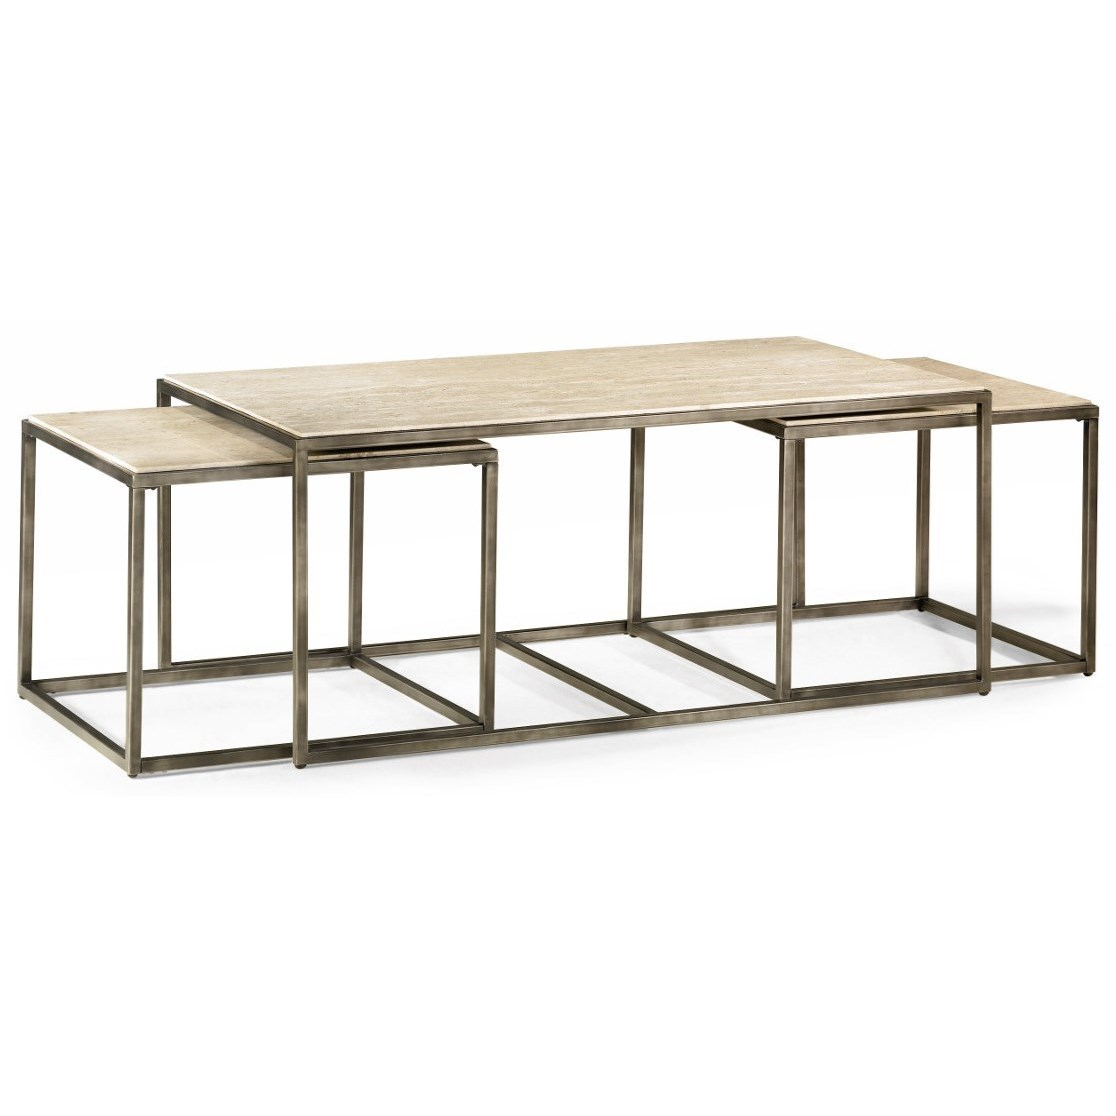 Bronze Nesting Coffee Tables: Rectangular Cocktail Table With Bronze With Nesting Tables